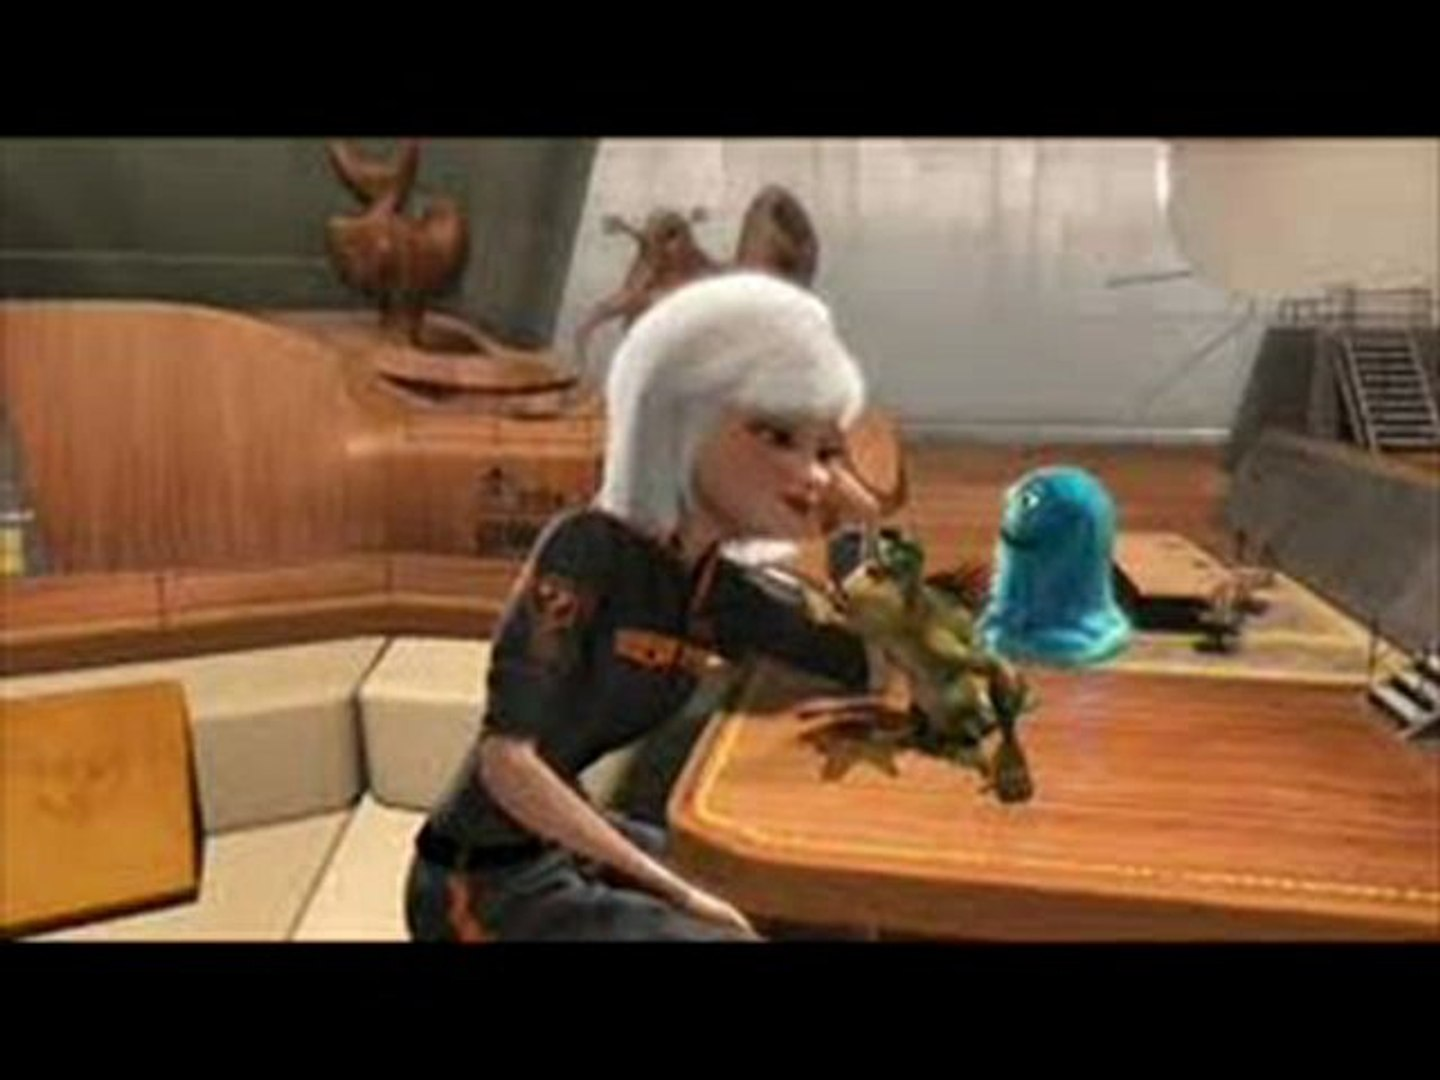 Monsters vs Aliens Mutant Pumpkins from Outer Space Movie Animated Trailer HD